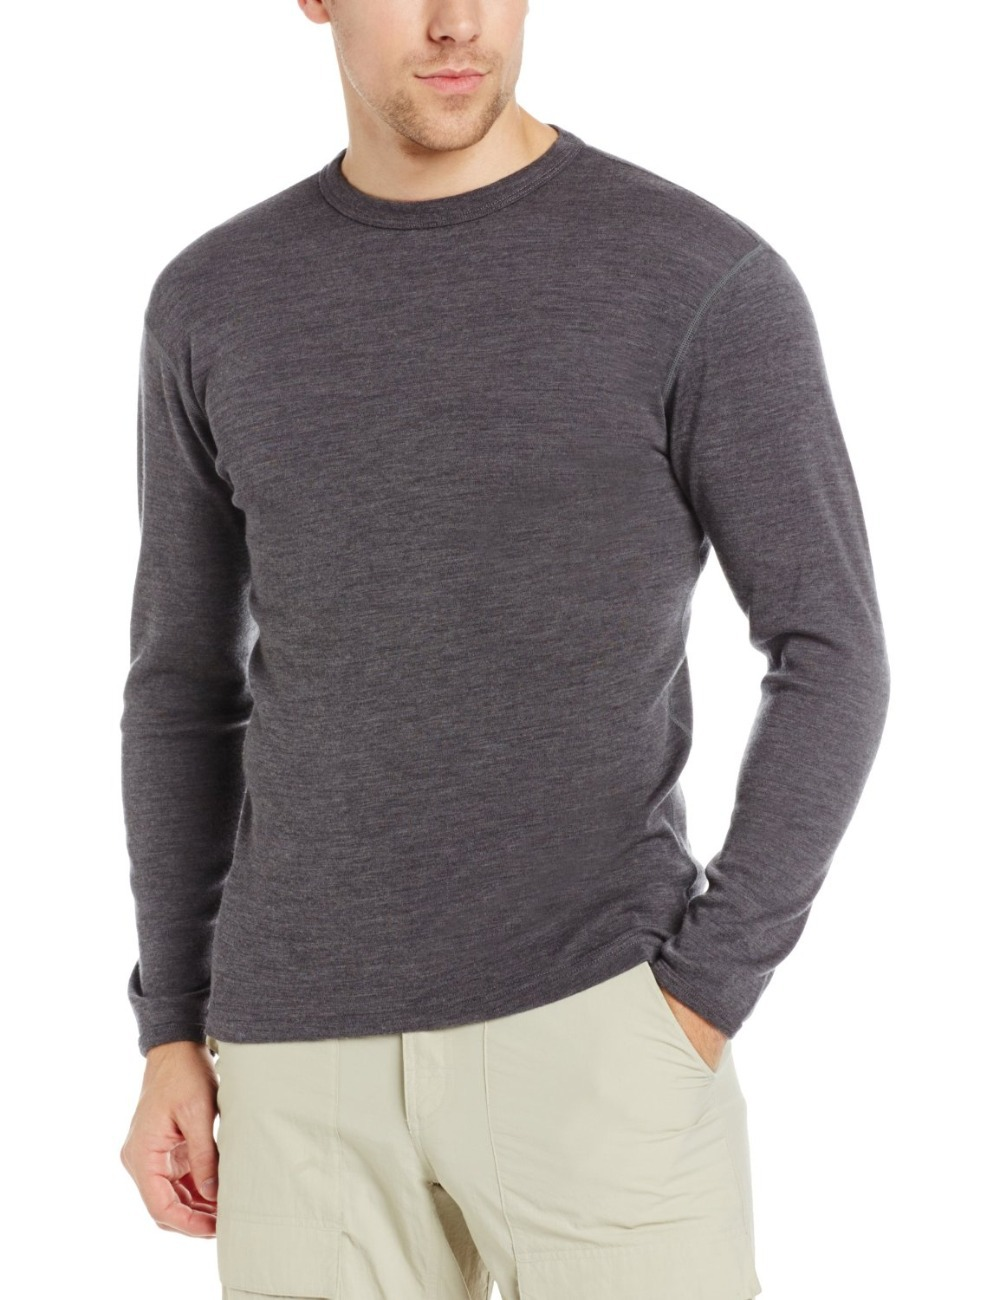 Male Pure 100 New Merino Wool Men s Midweight Crew Long Sleeves Warm Winter Breathable Clothing